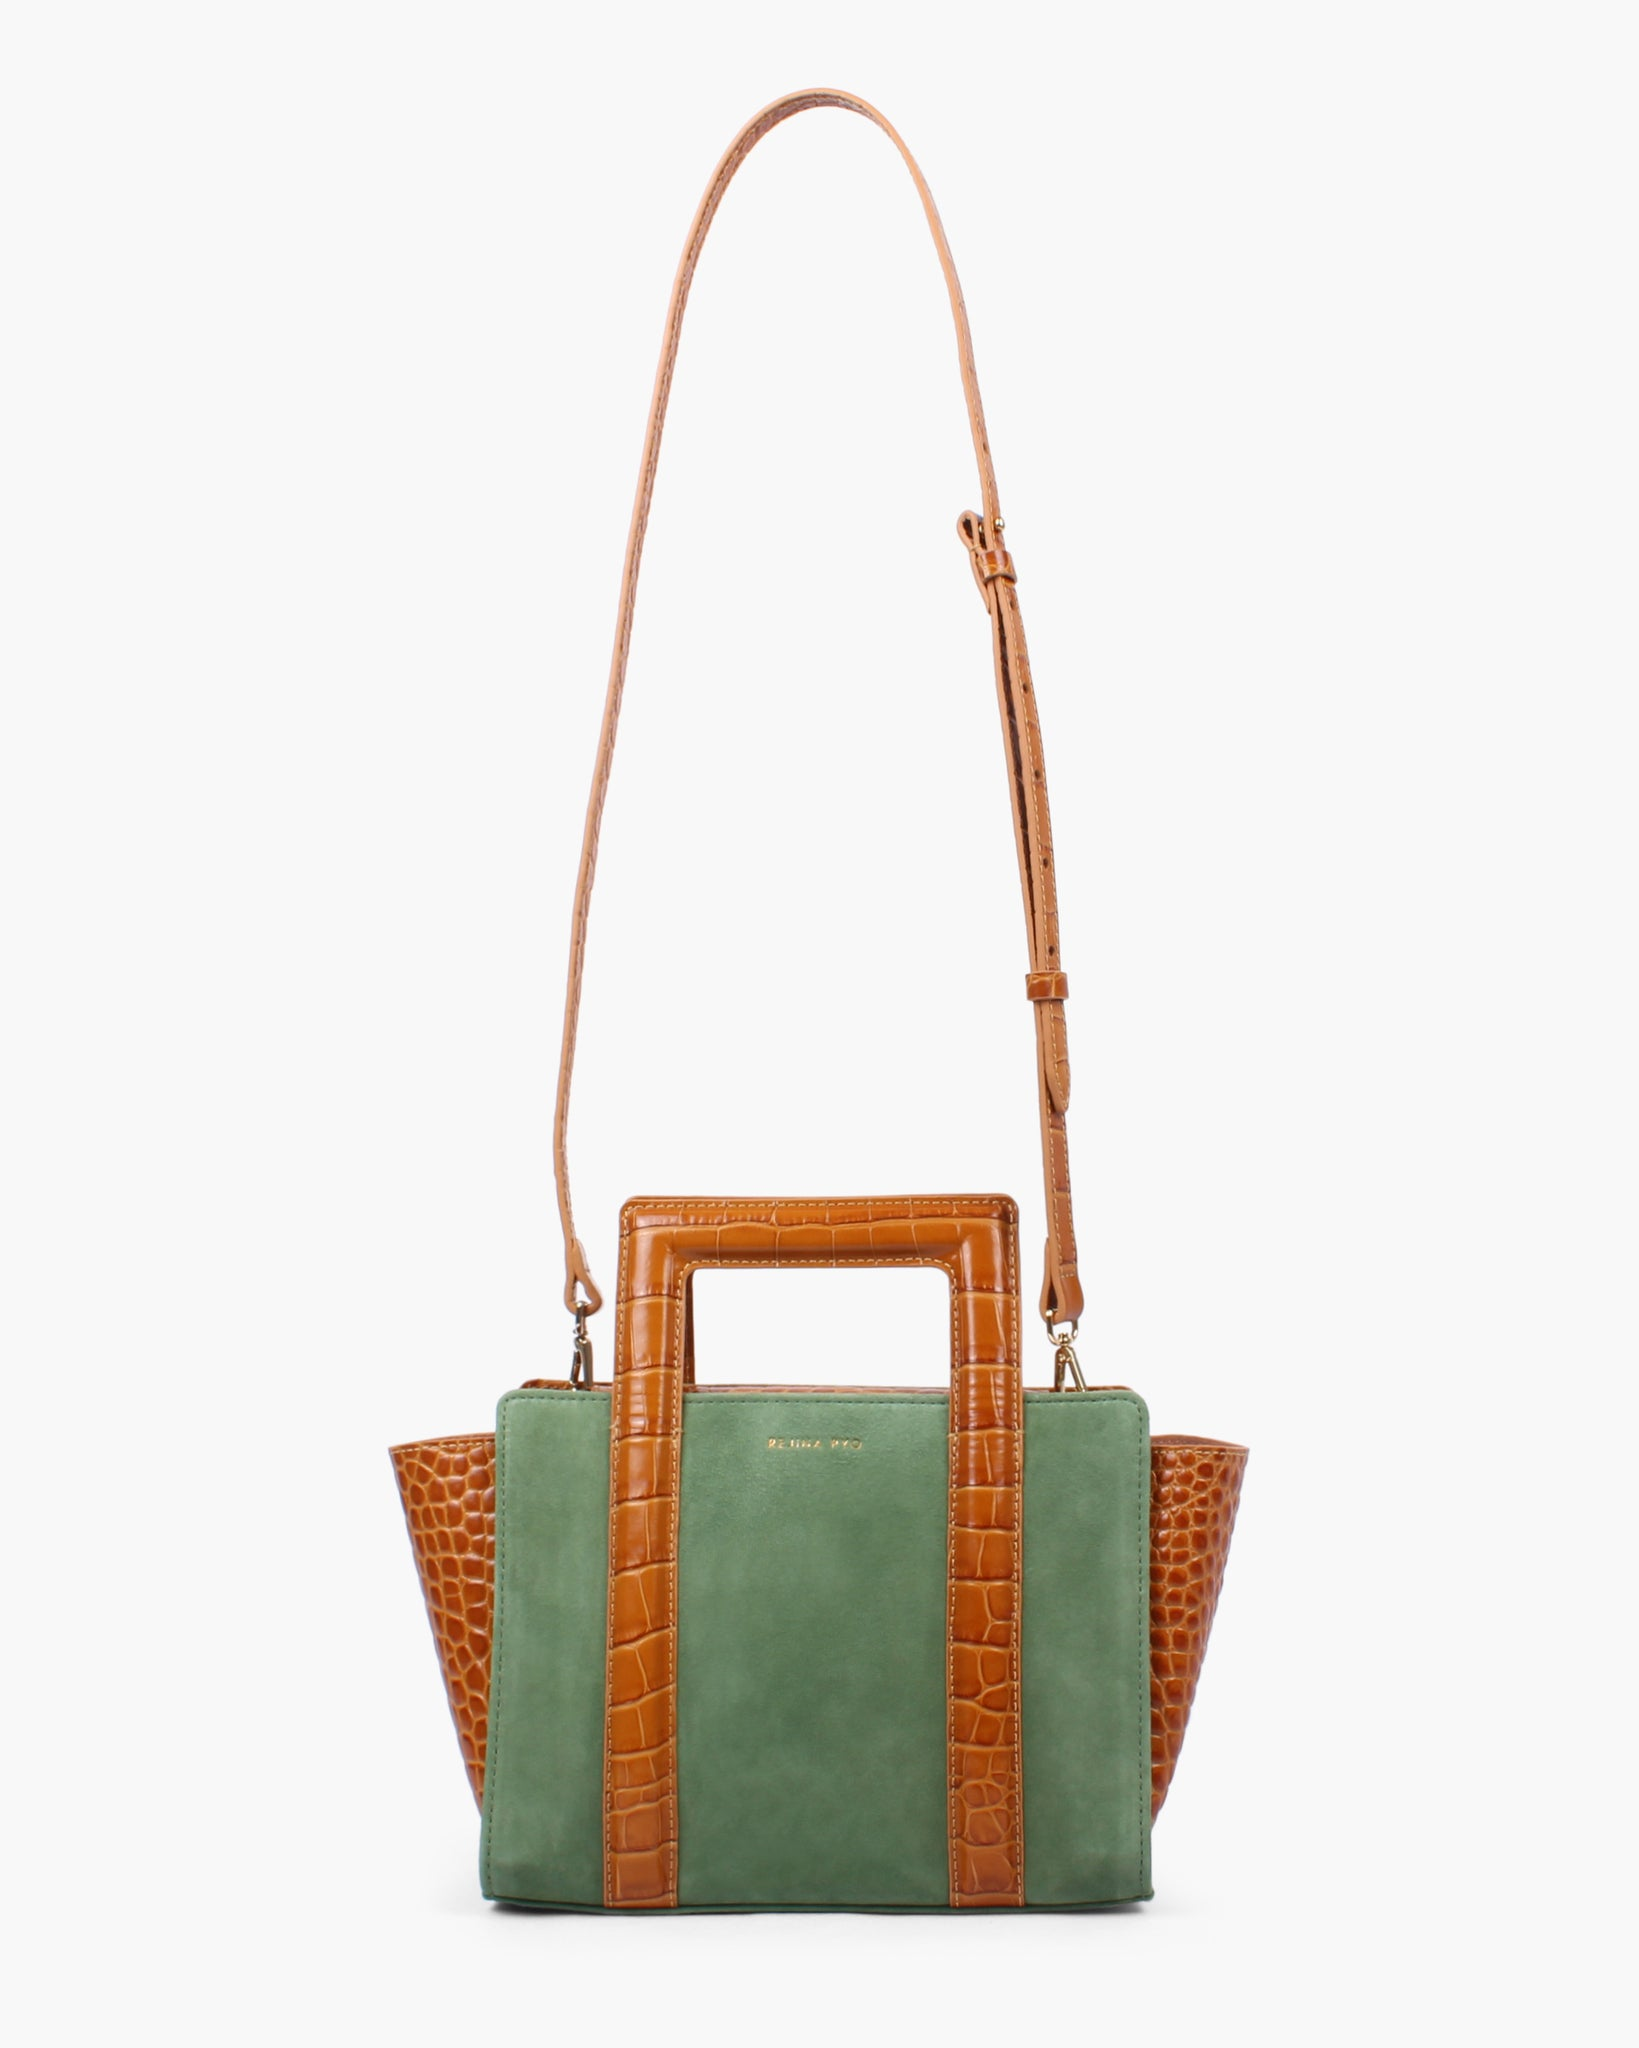 Madison Tote Suede Green and Leather Croc Tan